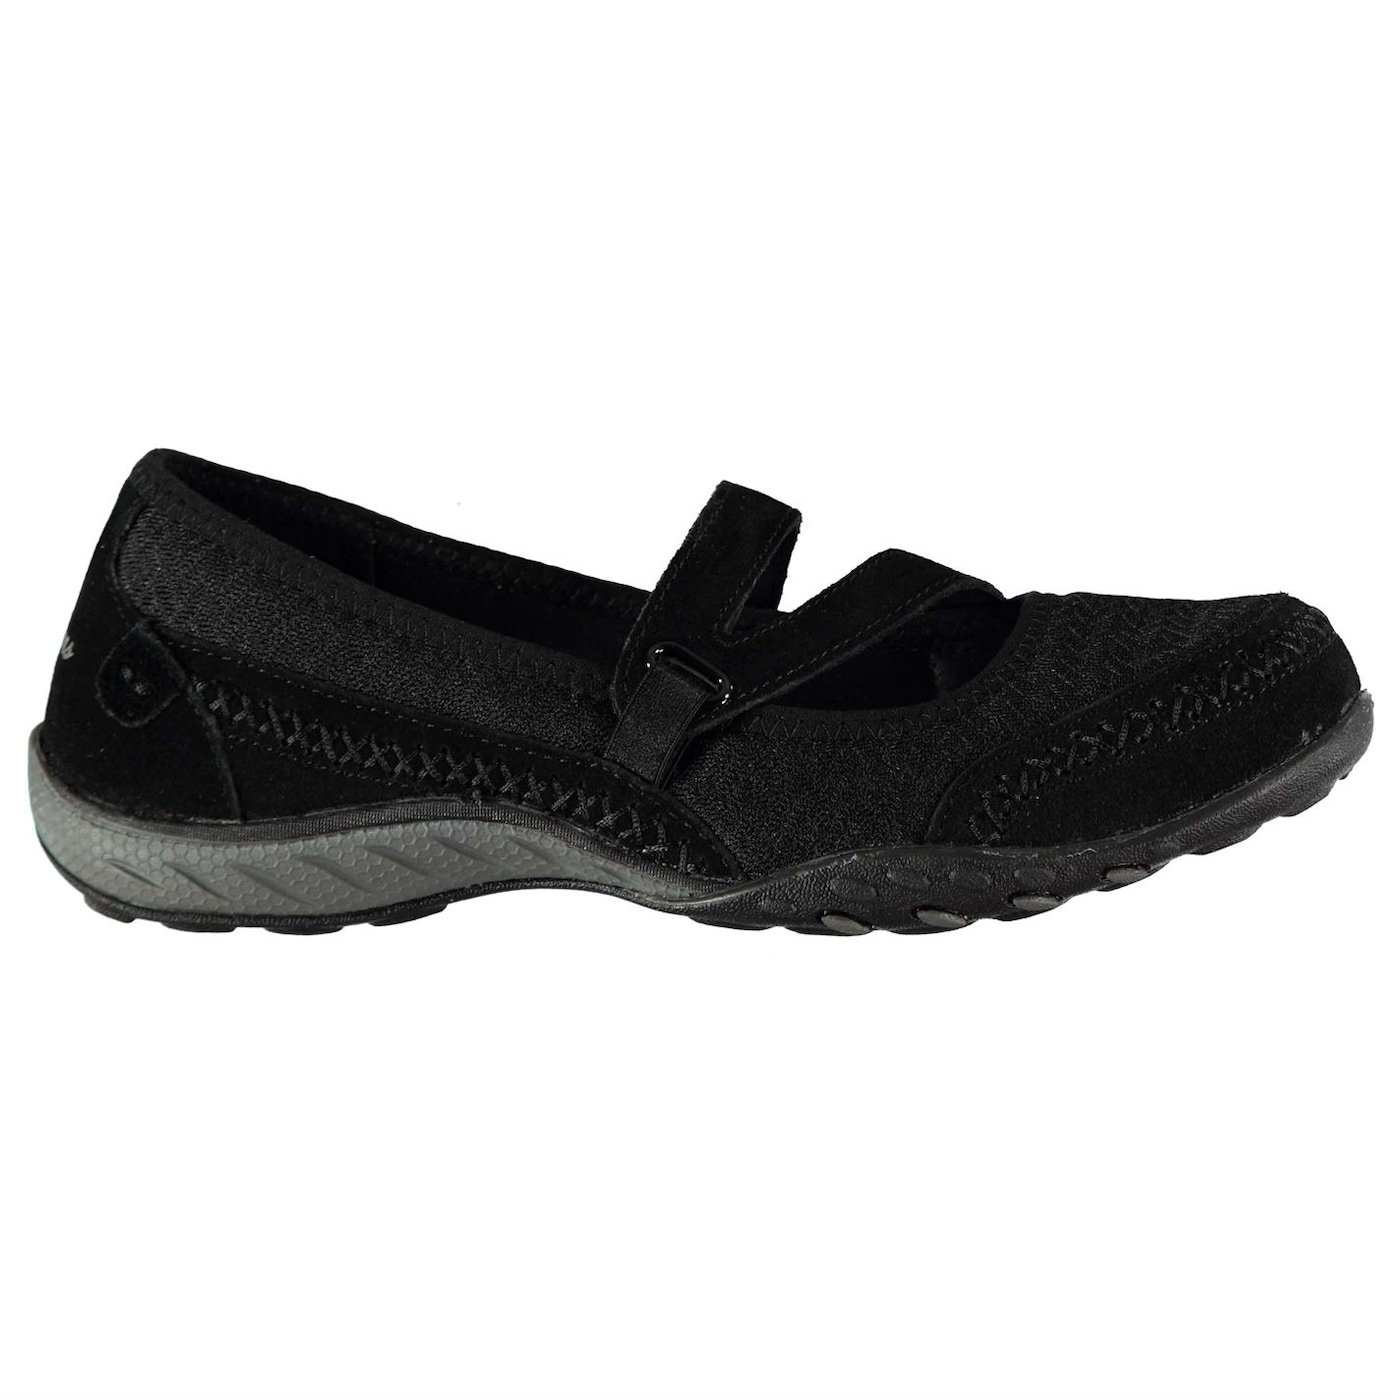 Skechers Relaxed Fit Breathe Easy Shoes Ladies